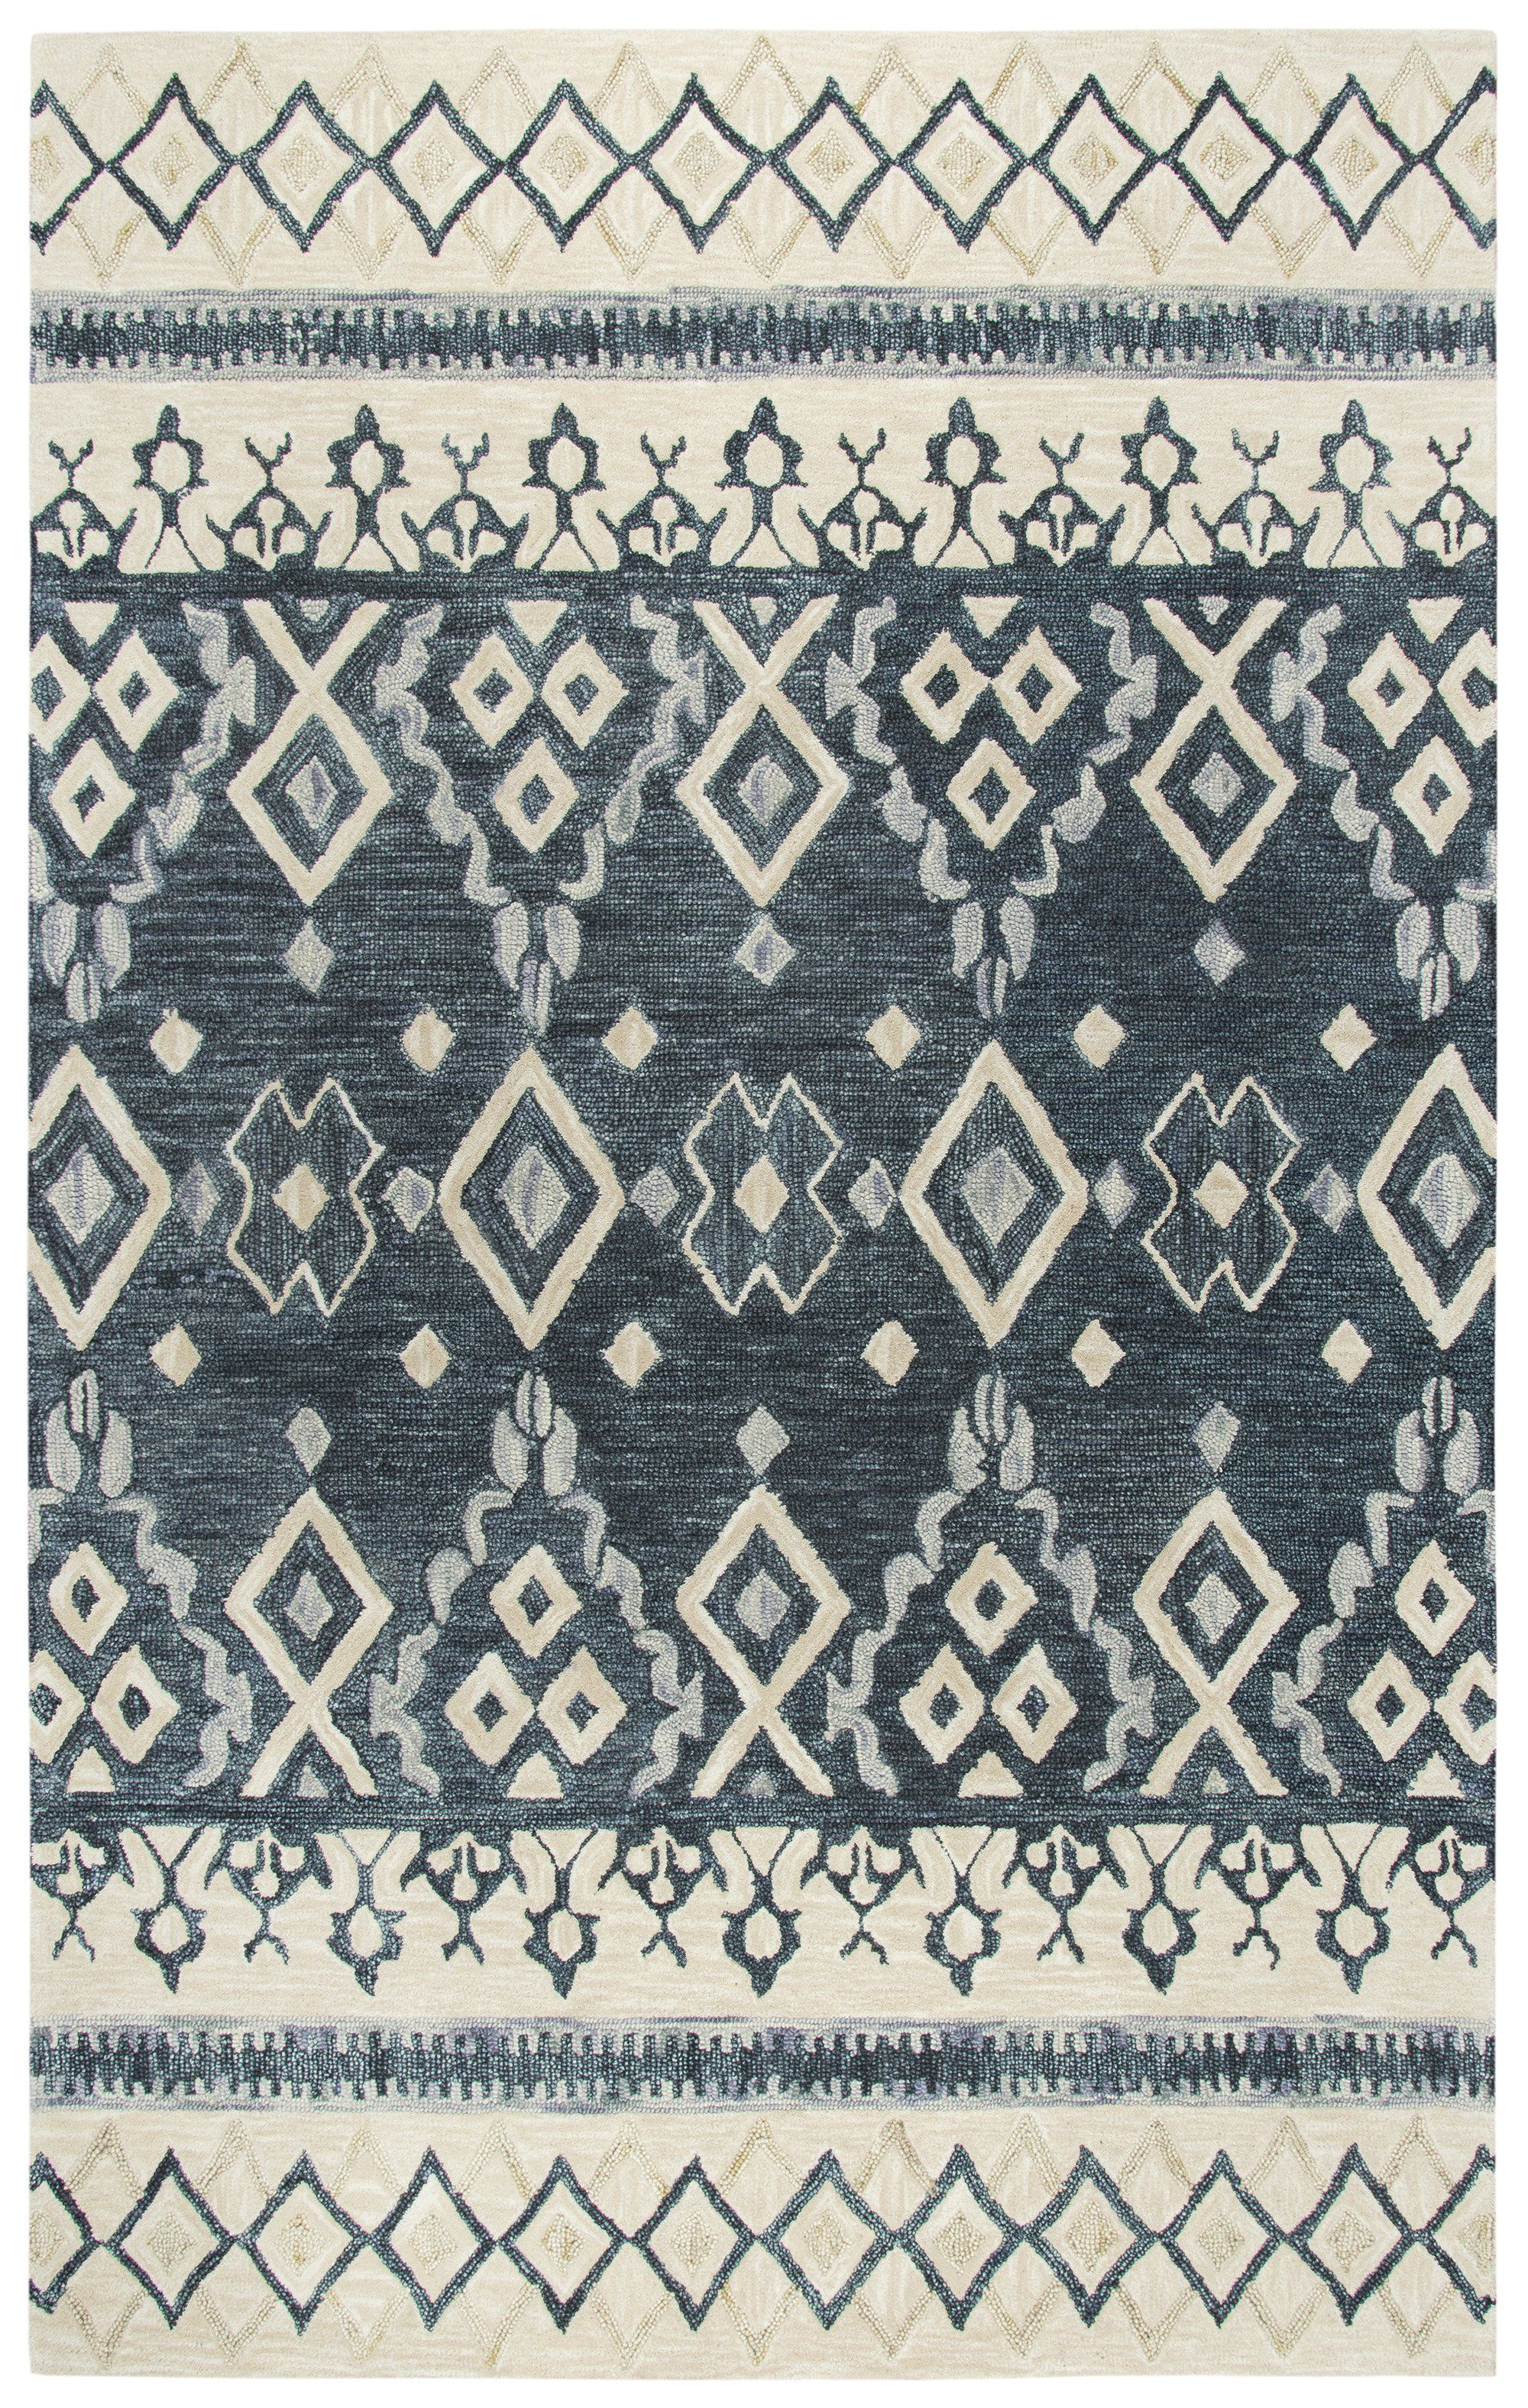 e0d2e8e6063 Rizzy Home Opulent OU936A Natural Tribal Motif Area Rug | Products ...